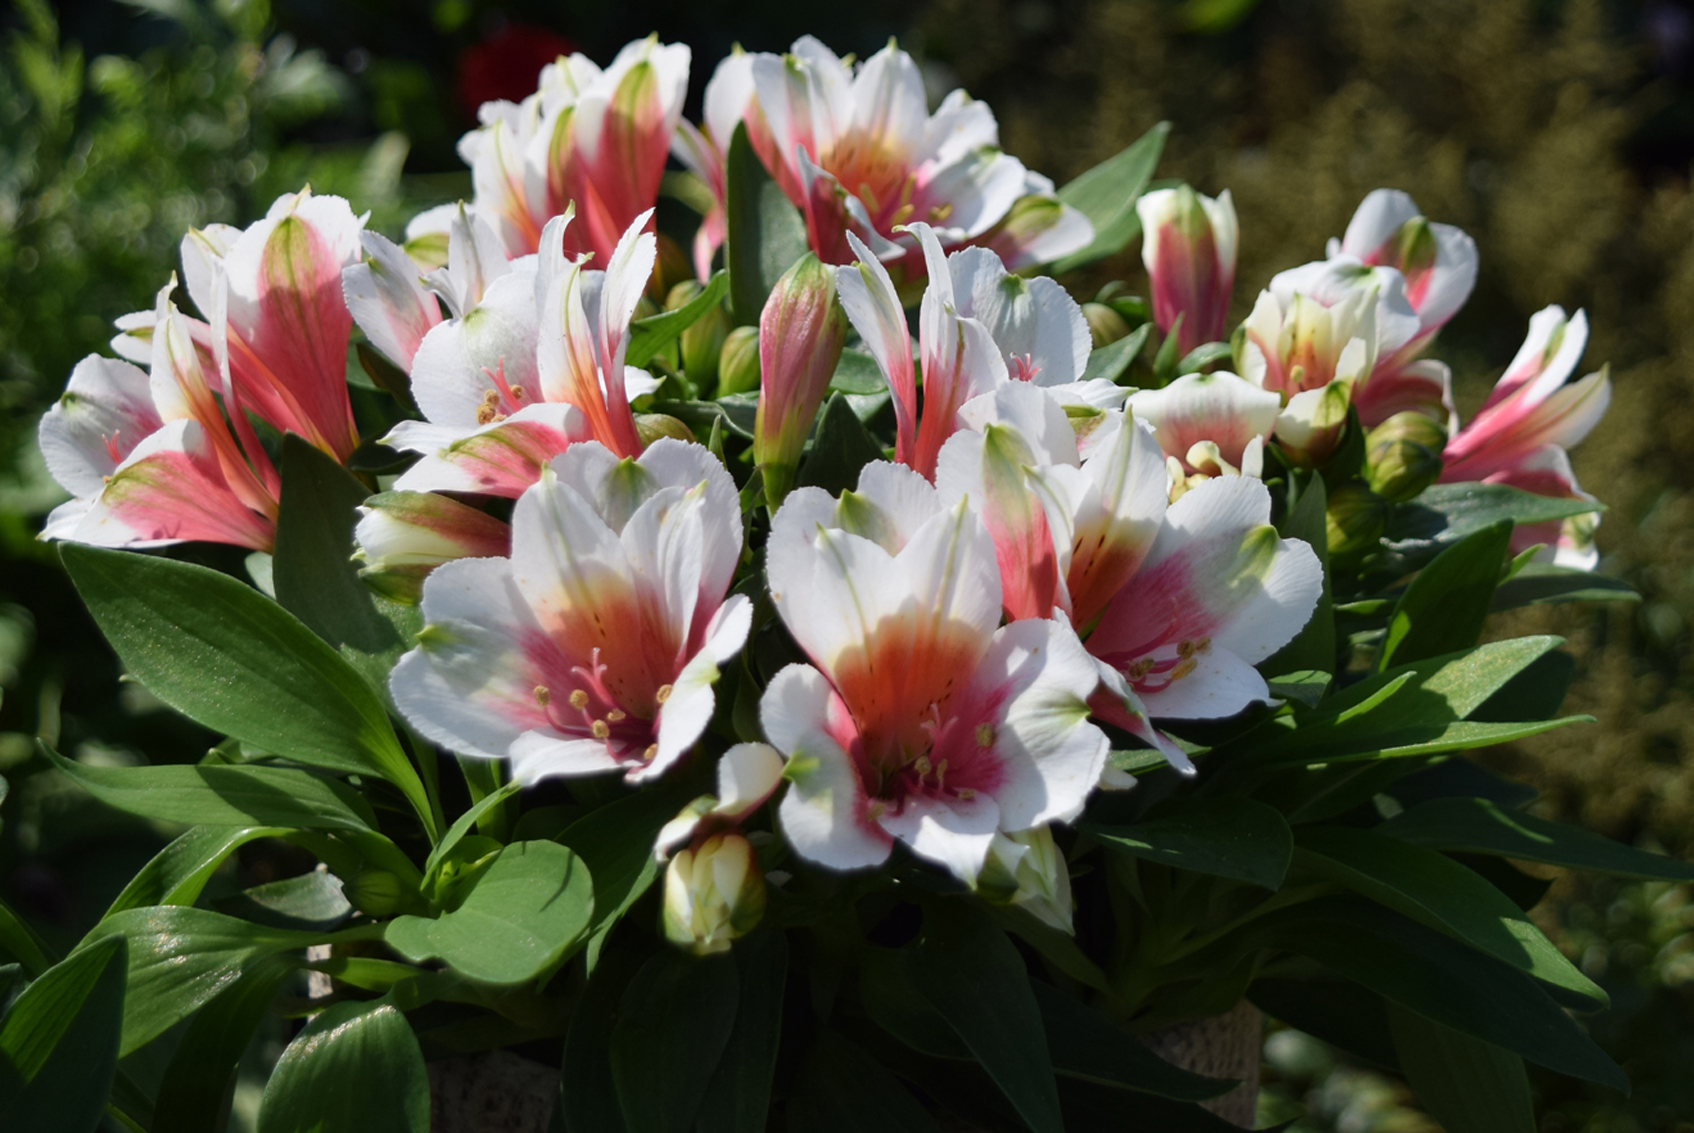 Konst Alstroemeria Supplier Of Youngplants For The Professional Grower